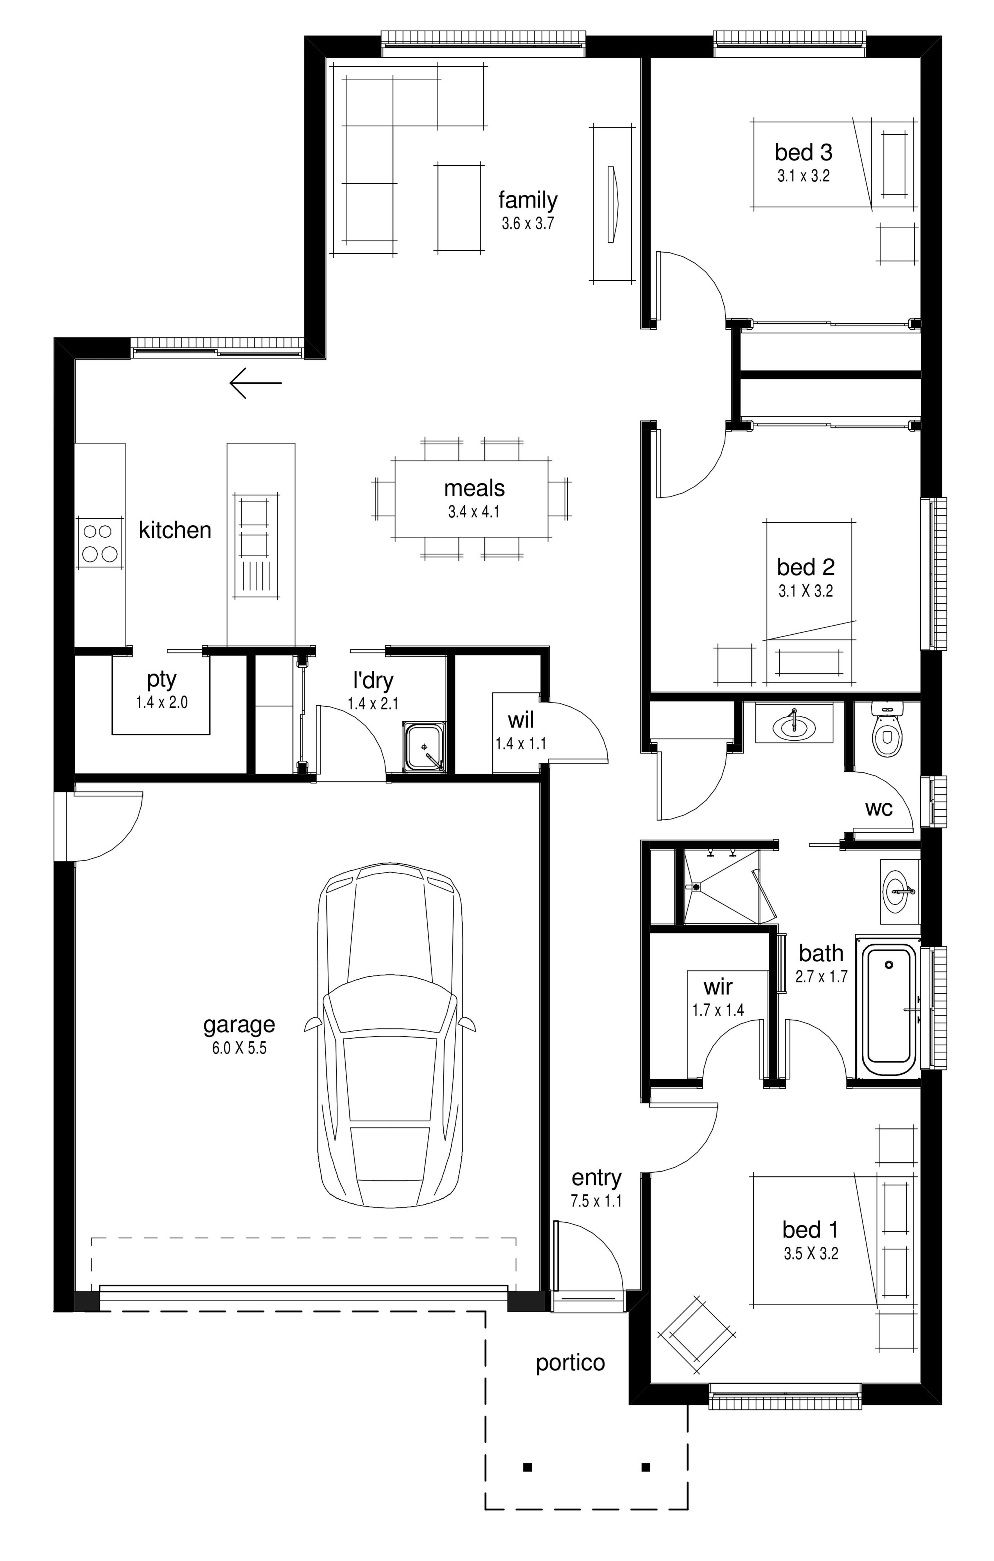 3 way bathroom floor plans 3 way bathroom floor plans interesting 3 way bathroom 21799